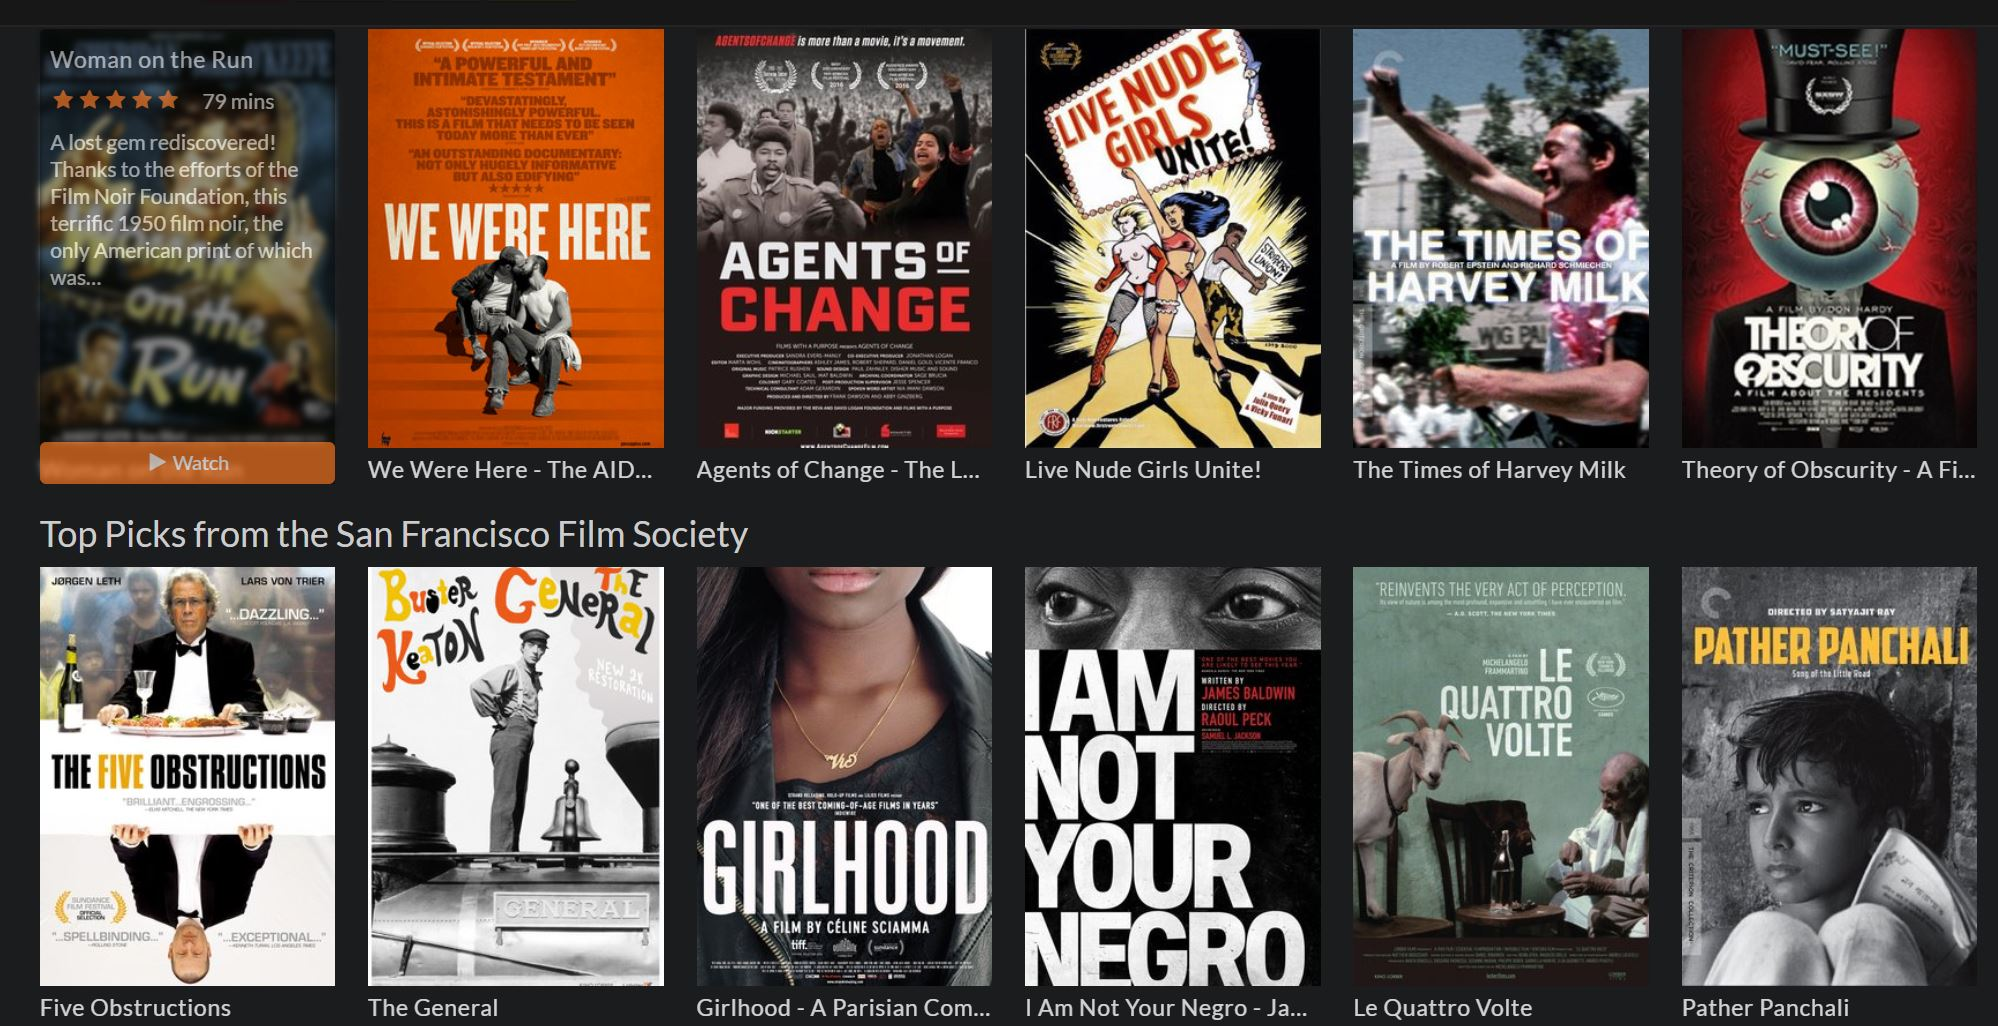 SF Public Library Users Now Have Access to 30,000 Films via 'Kanopy' Streaming Video Platform